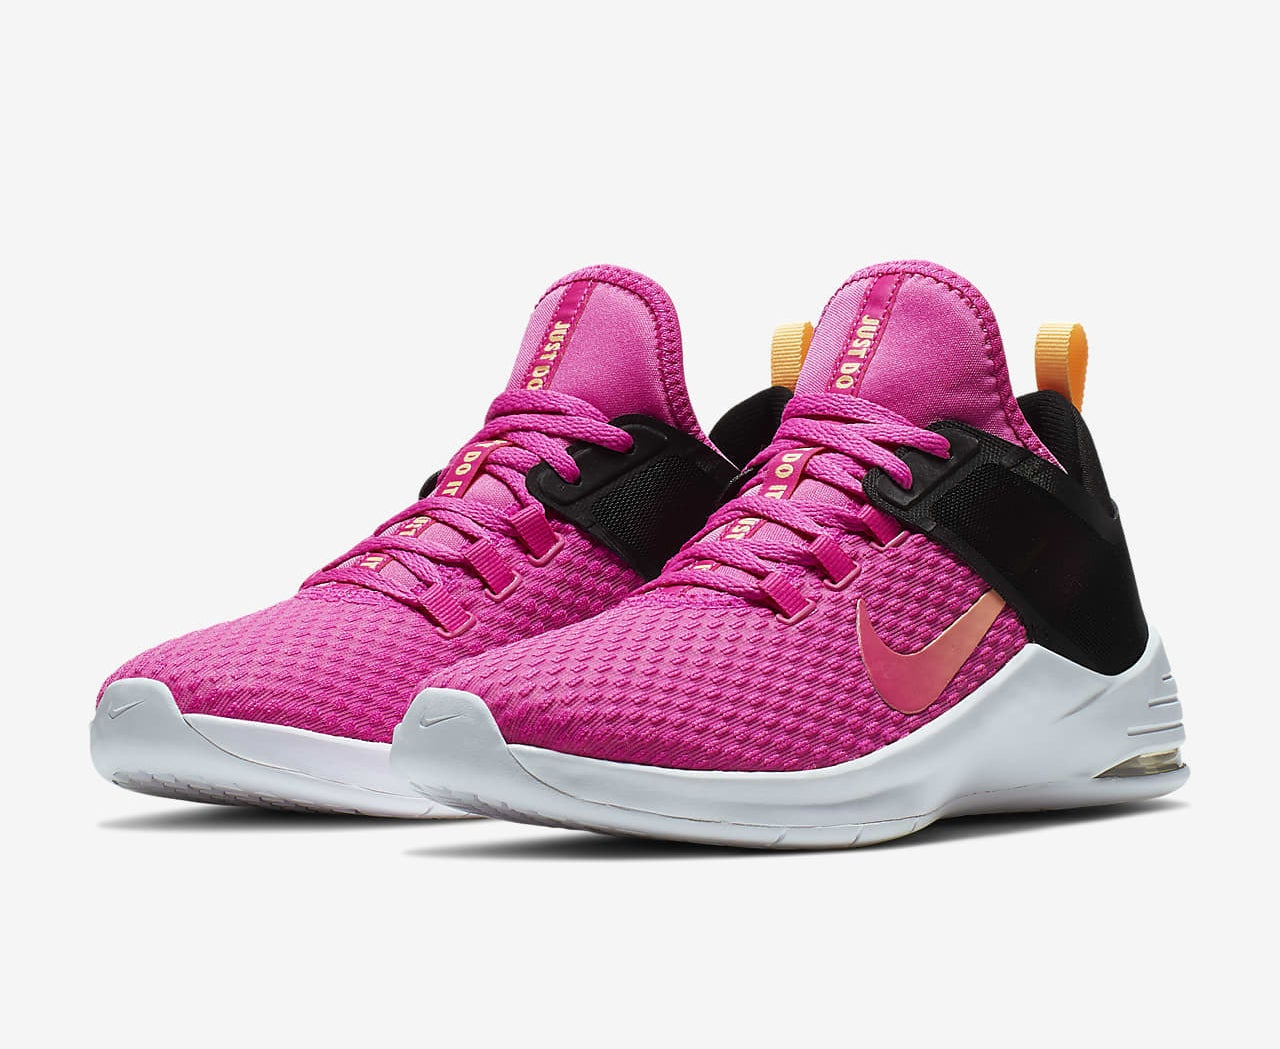 The sneakers in bright pink with white footbed and black heel